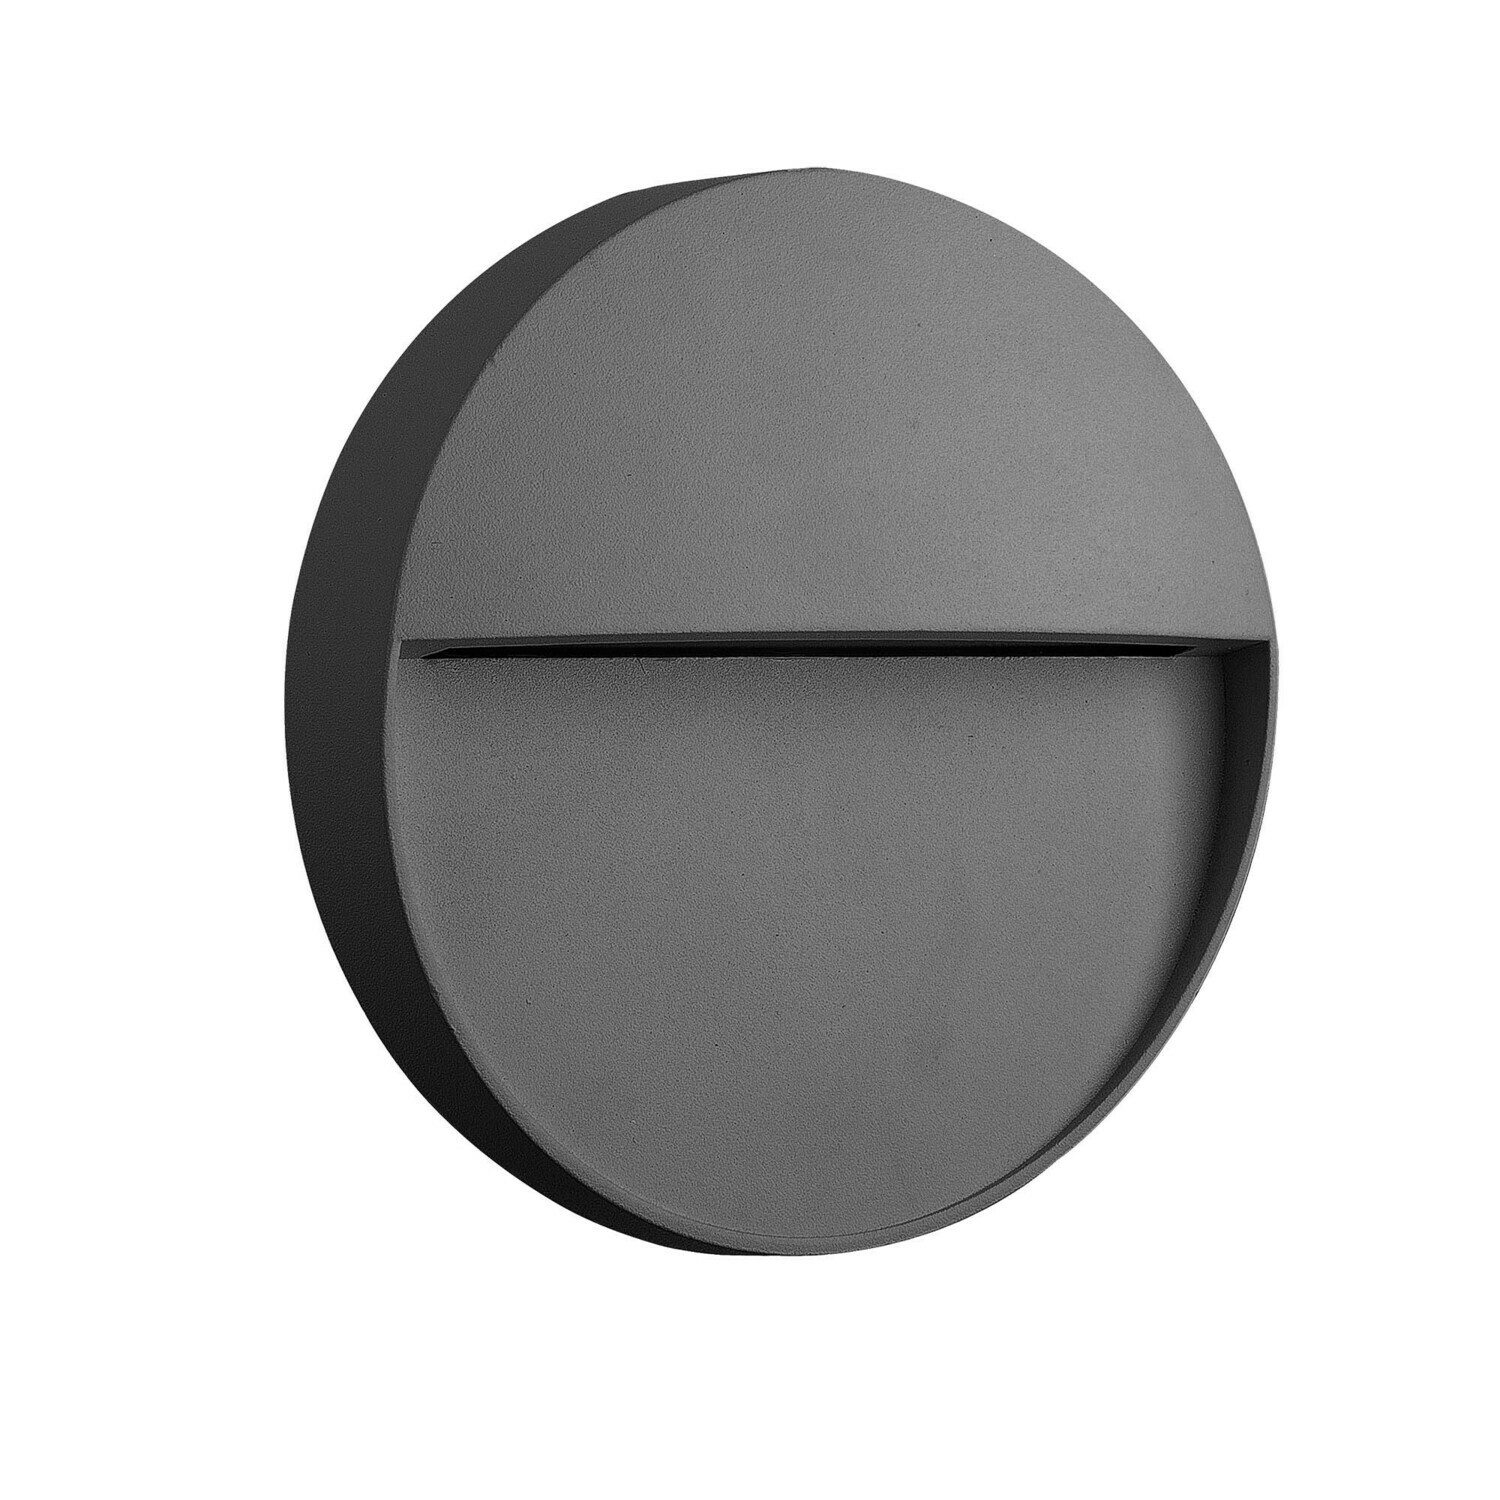 Baker Wall Lamp Small Round, 3W LED, 3000K, 150lm, IP54, Anthracite